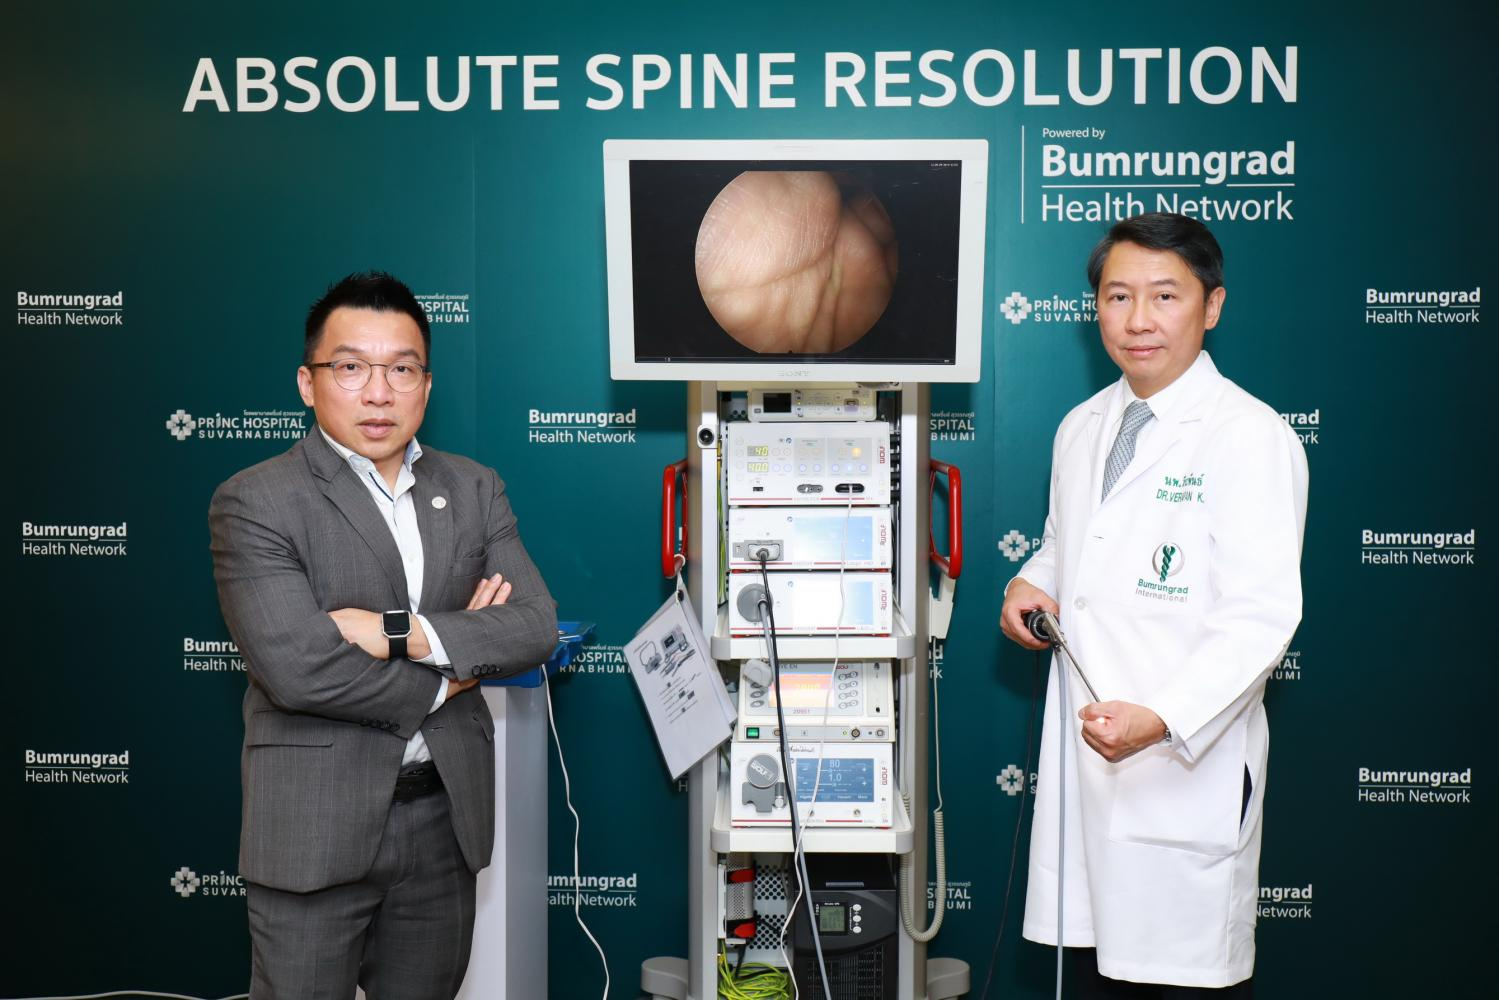 Dr Suthon (left) and Dr Verapan with some of the imaging equipment used at the Bumrungrad Spine Institute.